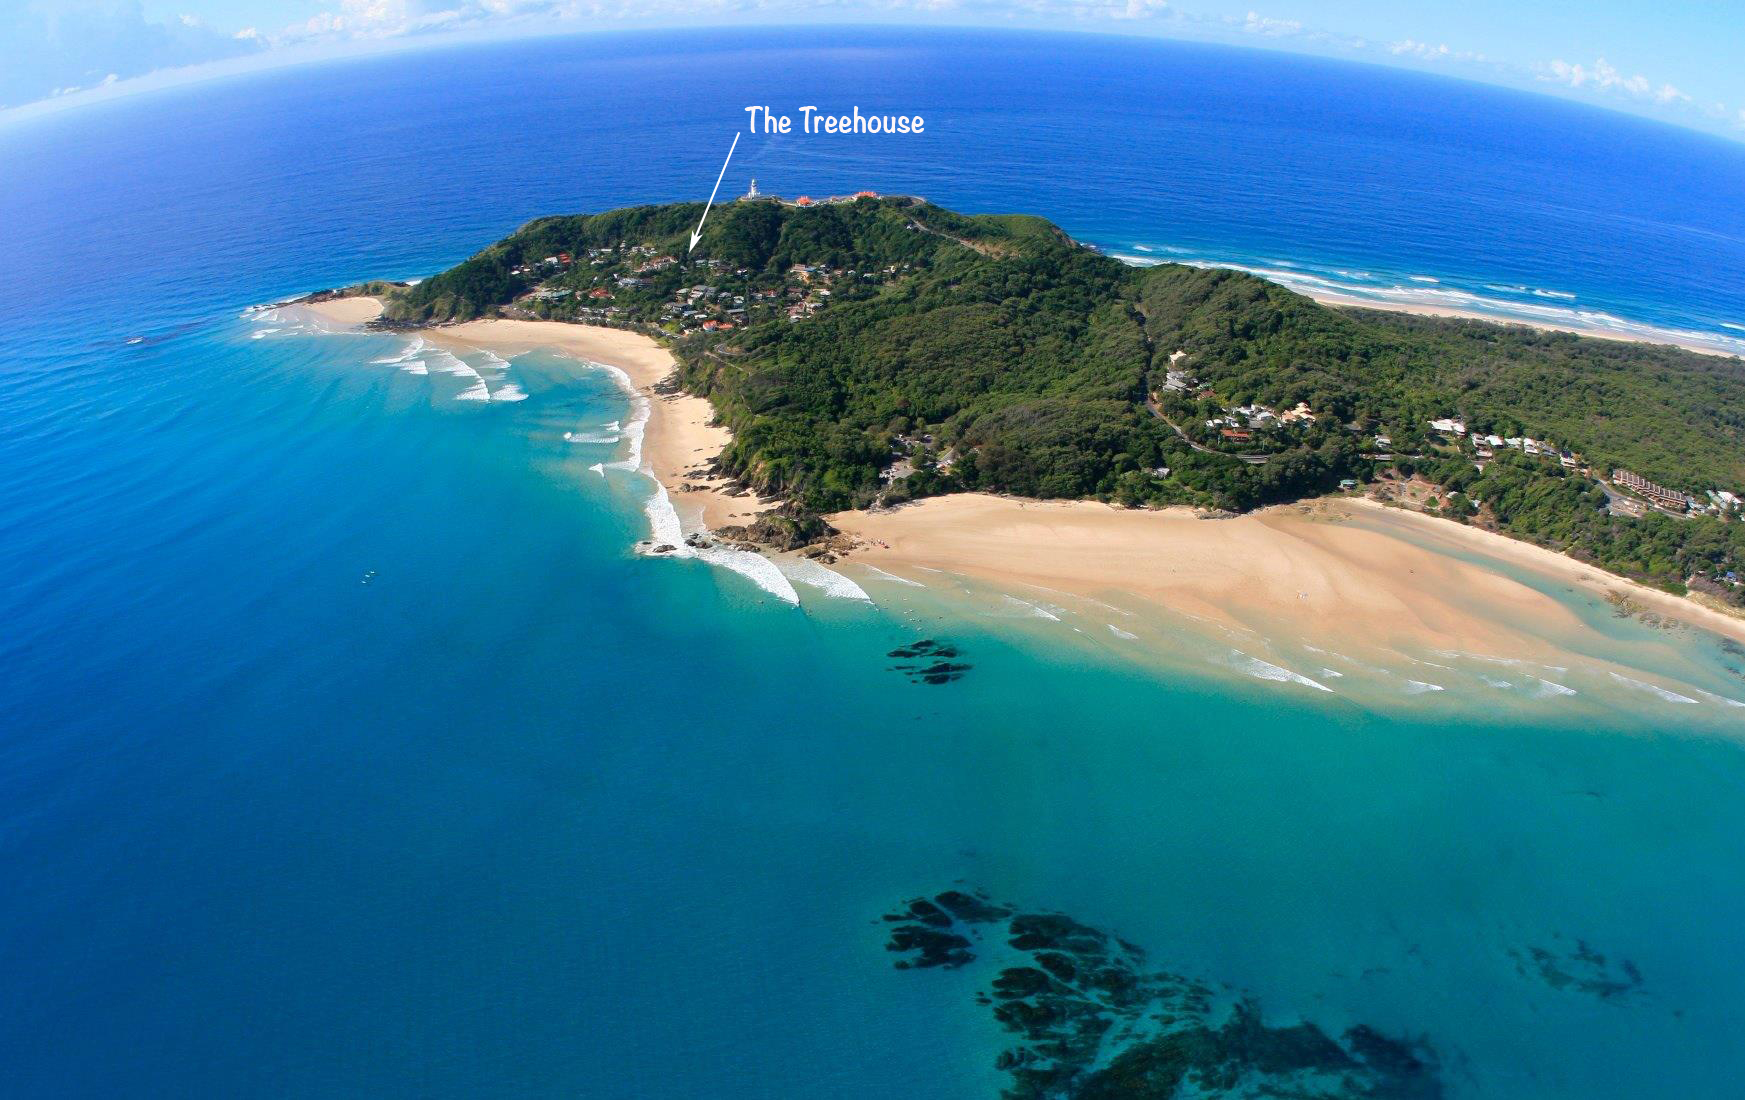 Cape Byron with arrow to Treehouse